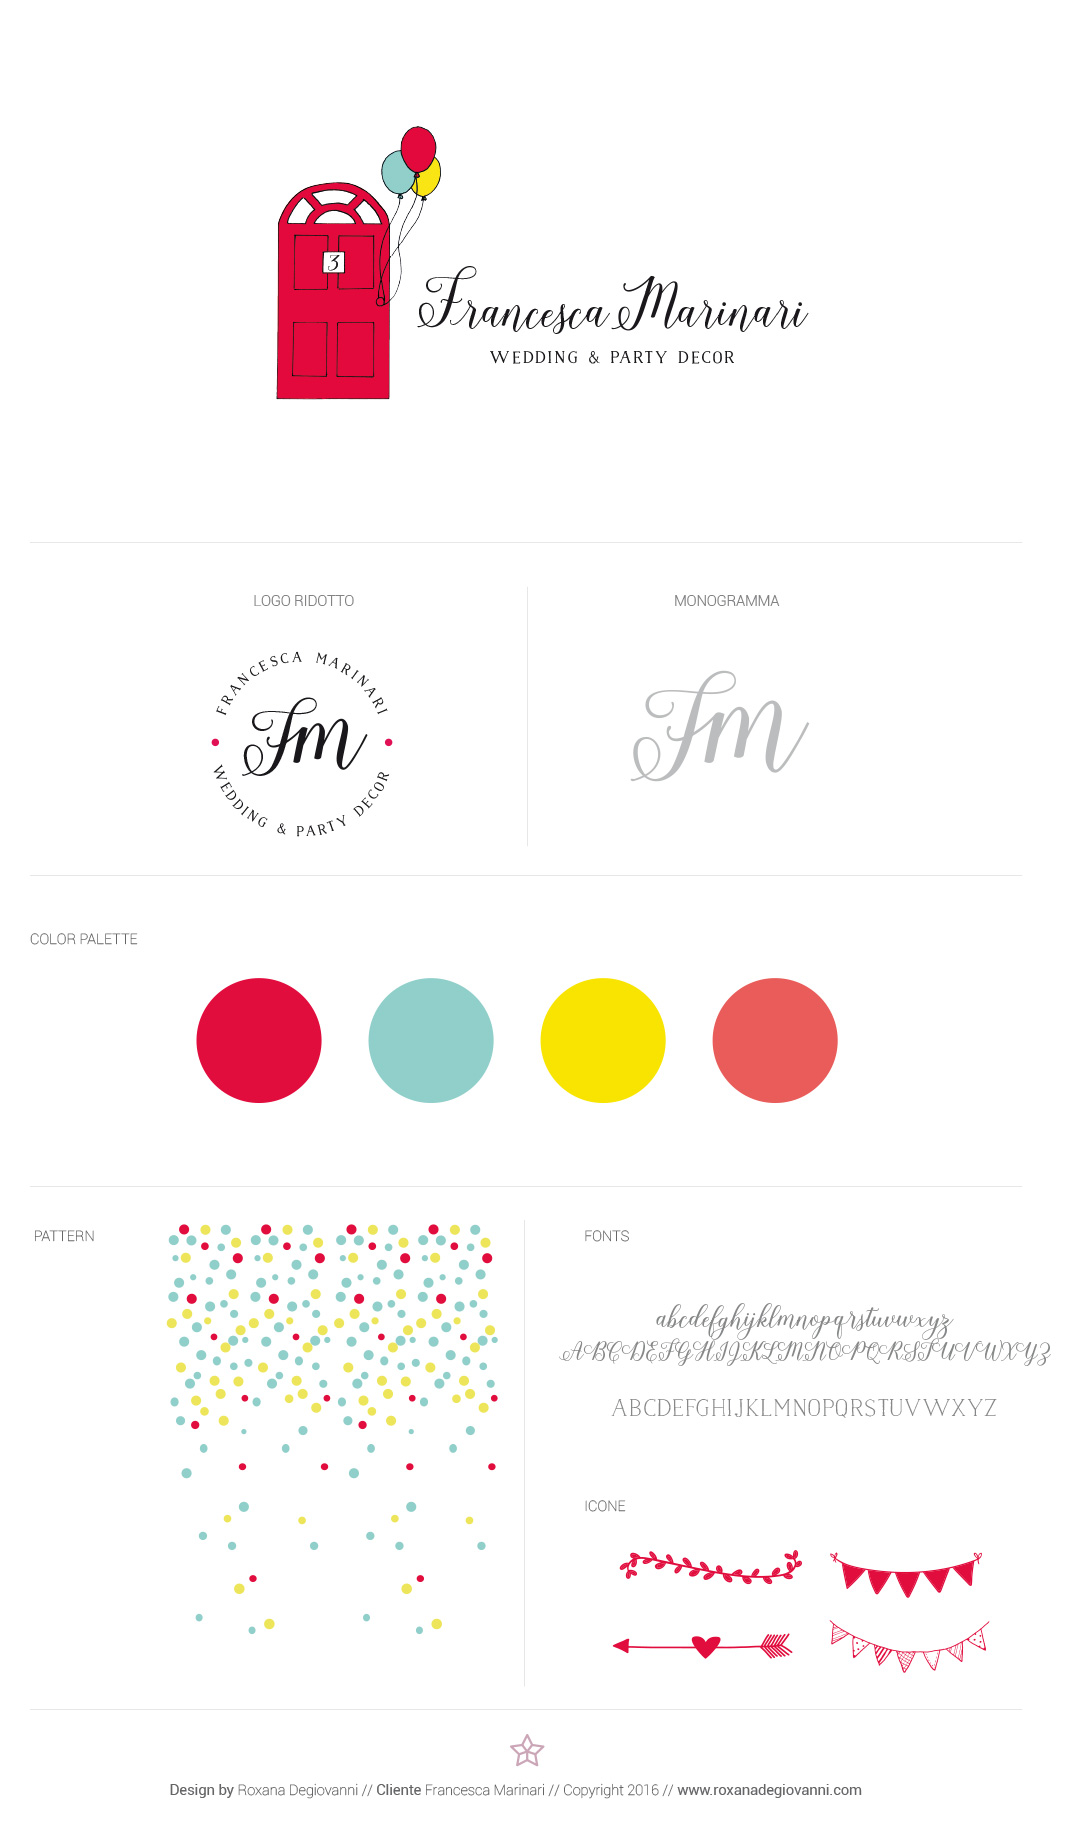 Wedding & Party decor, brand identity, brand style guide.